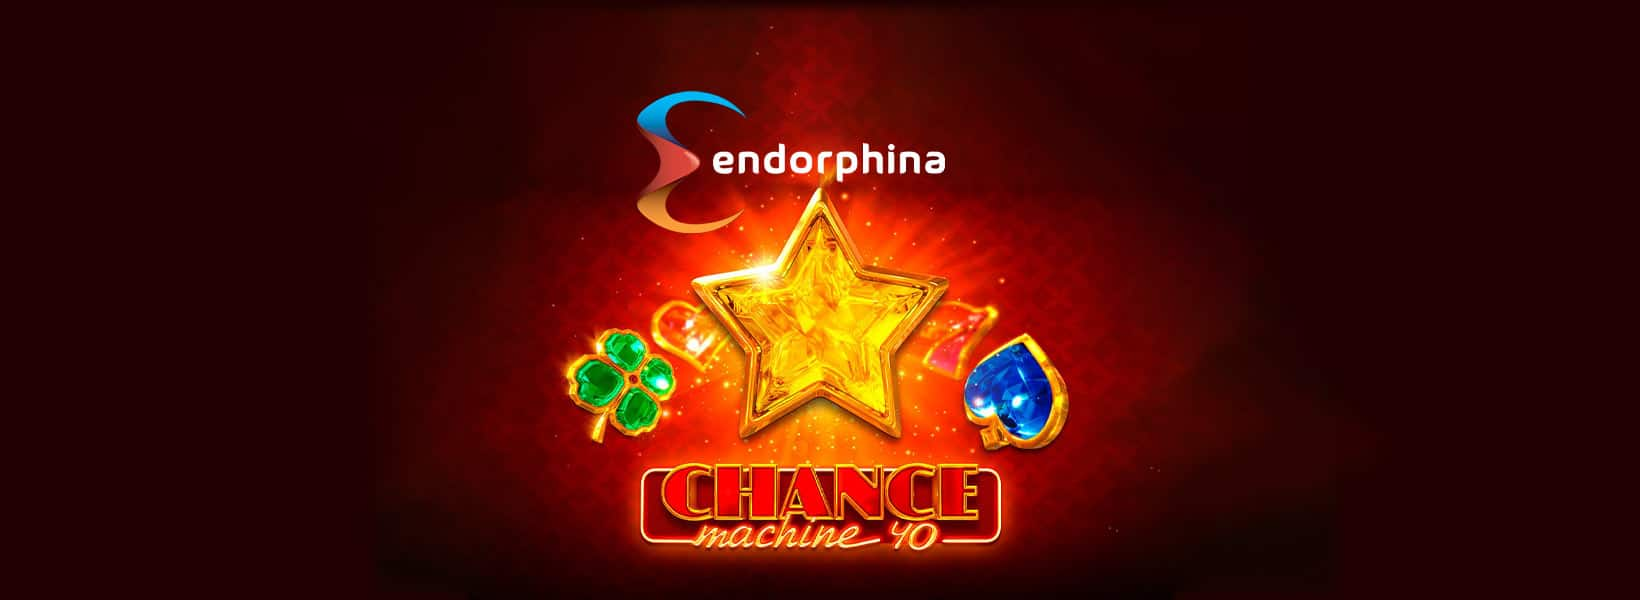 chance machine 40 slot